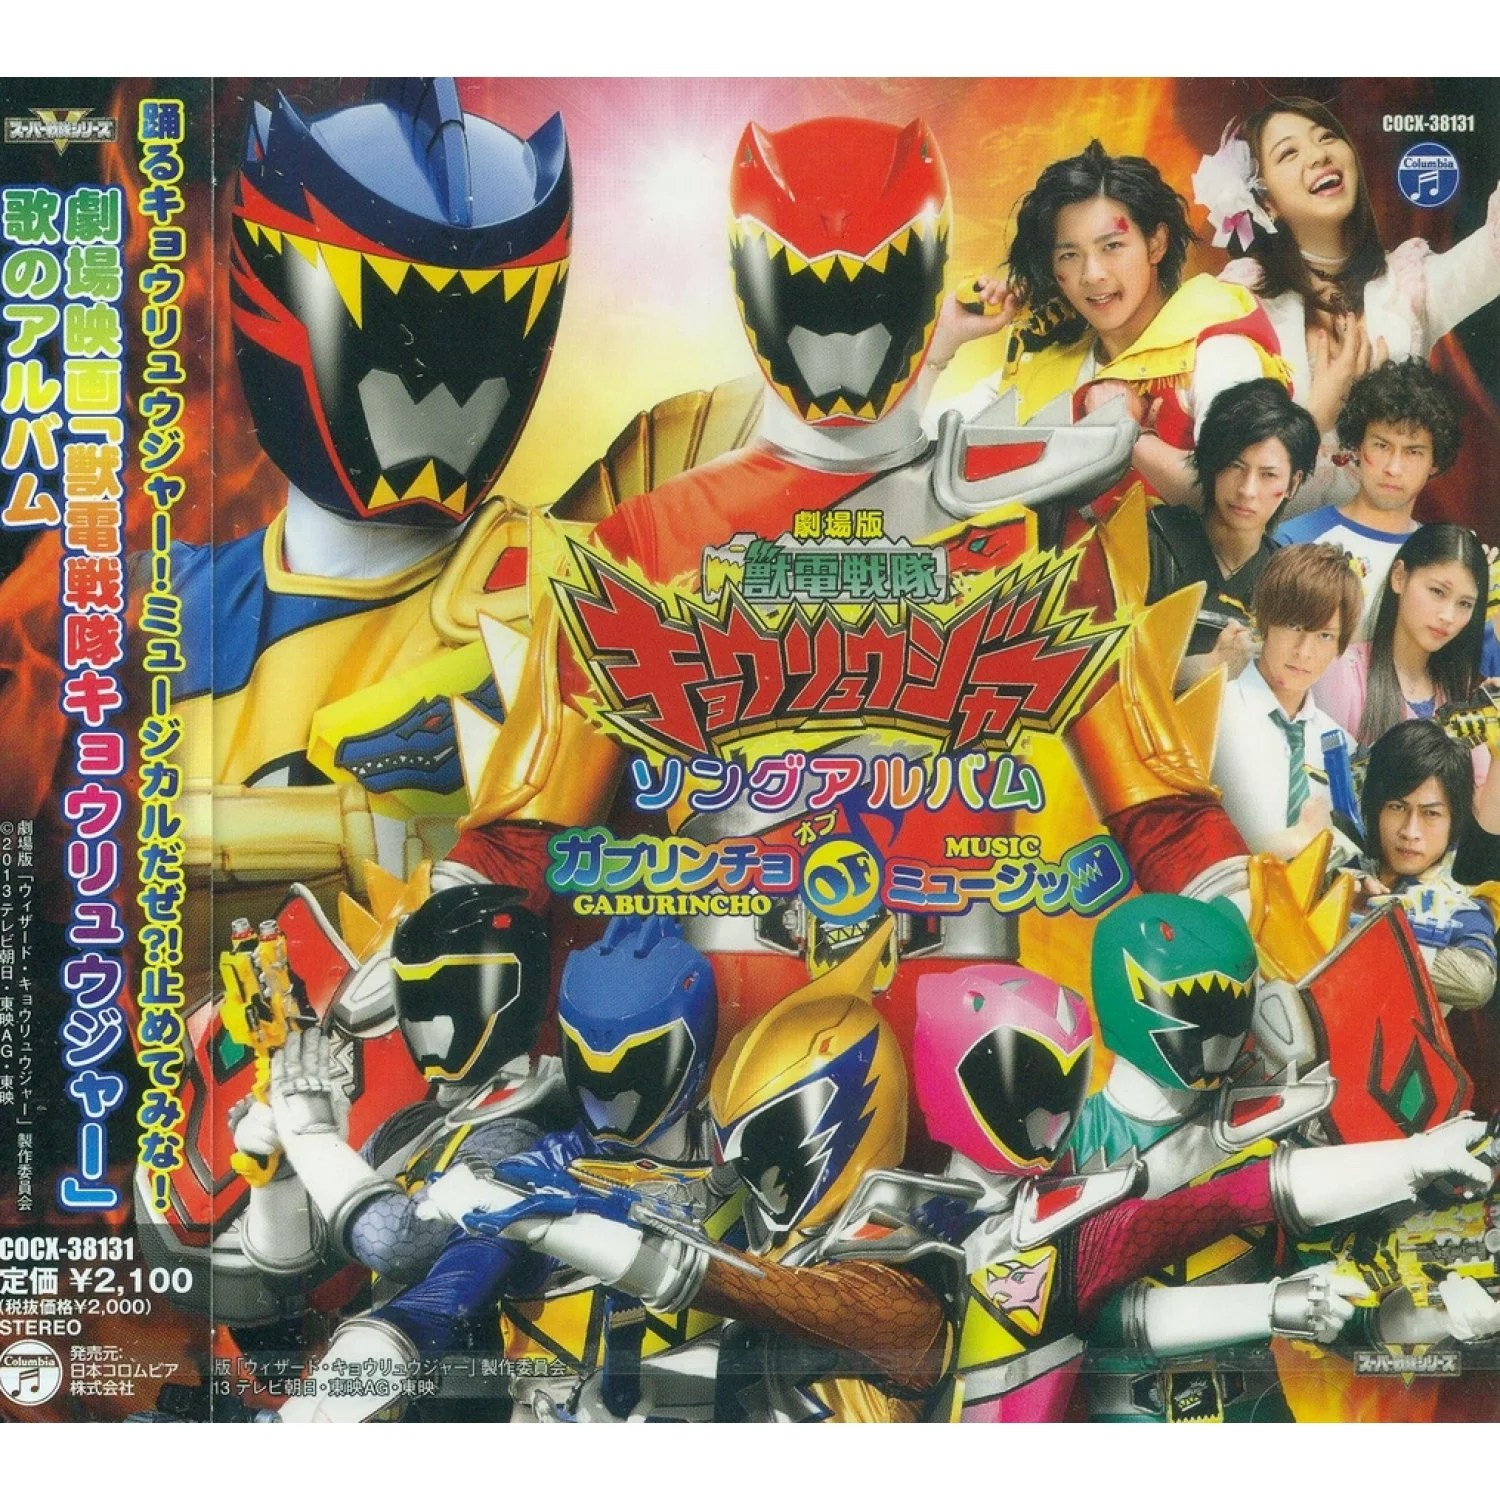 Zyuden Sentai Kyoryuger Song Album Gaburincho Of Music